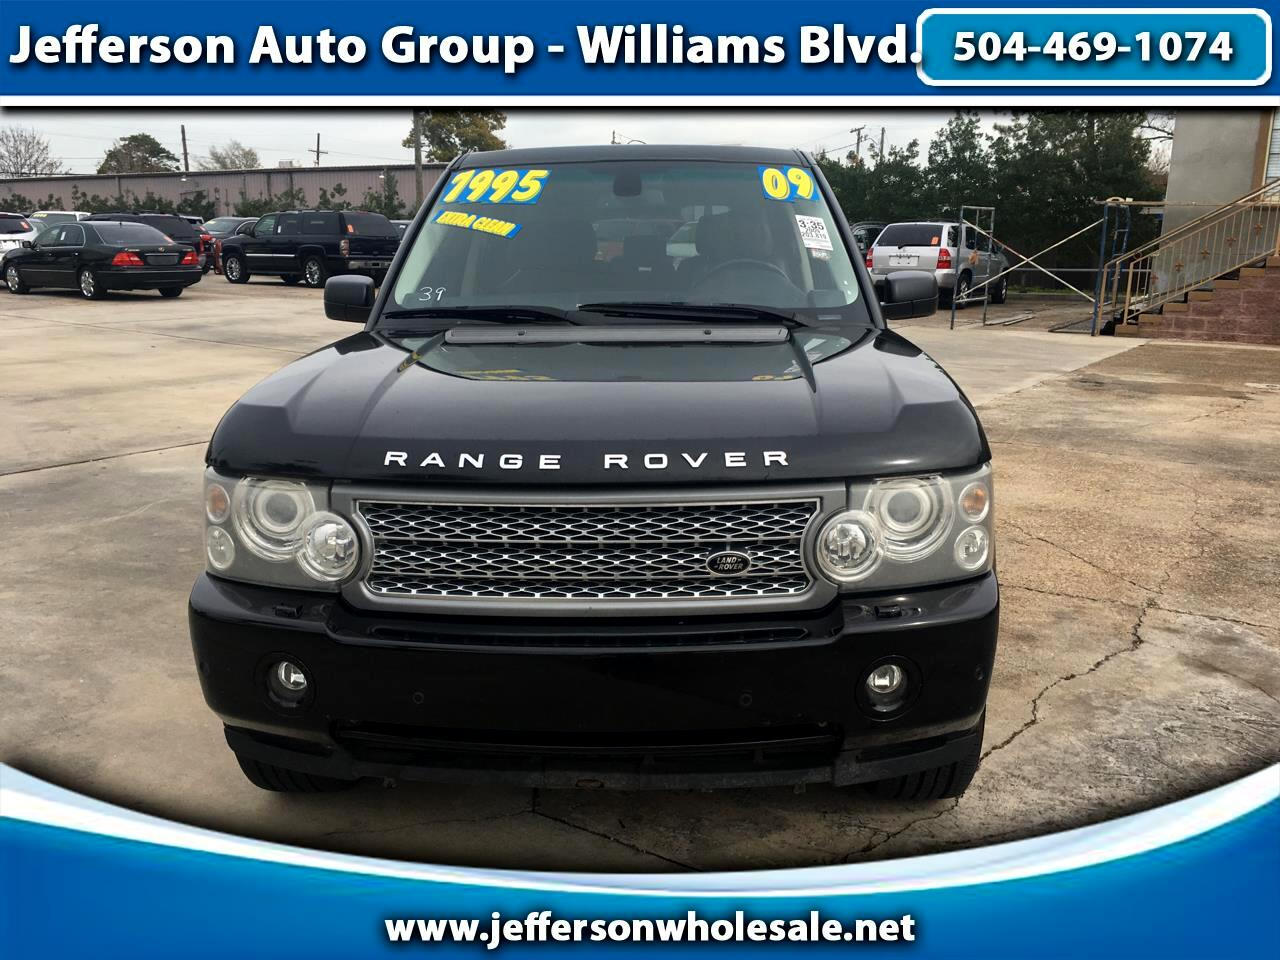 2009 Land Rover Range Rover 4WD 4dr HSE